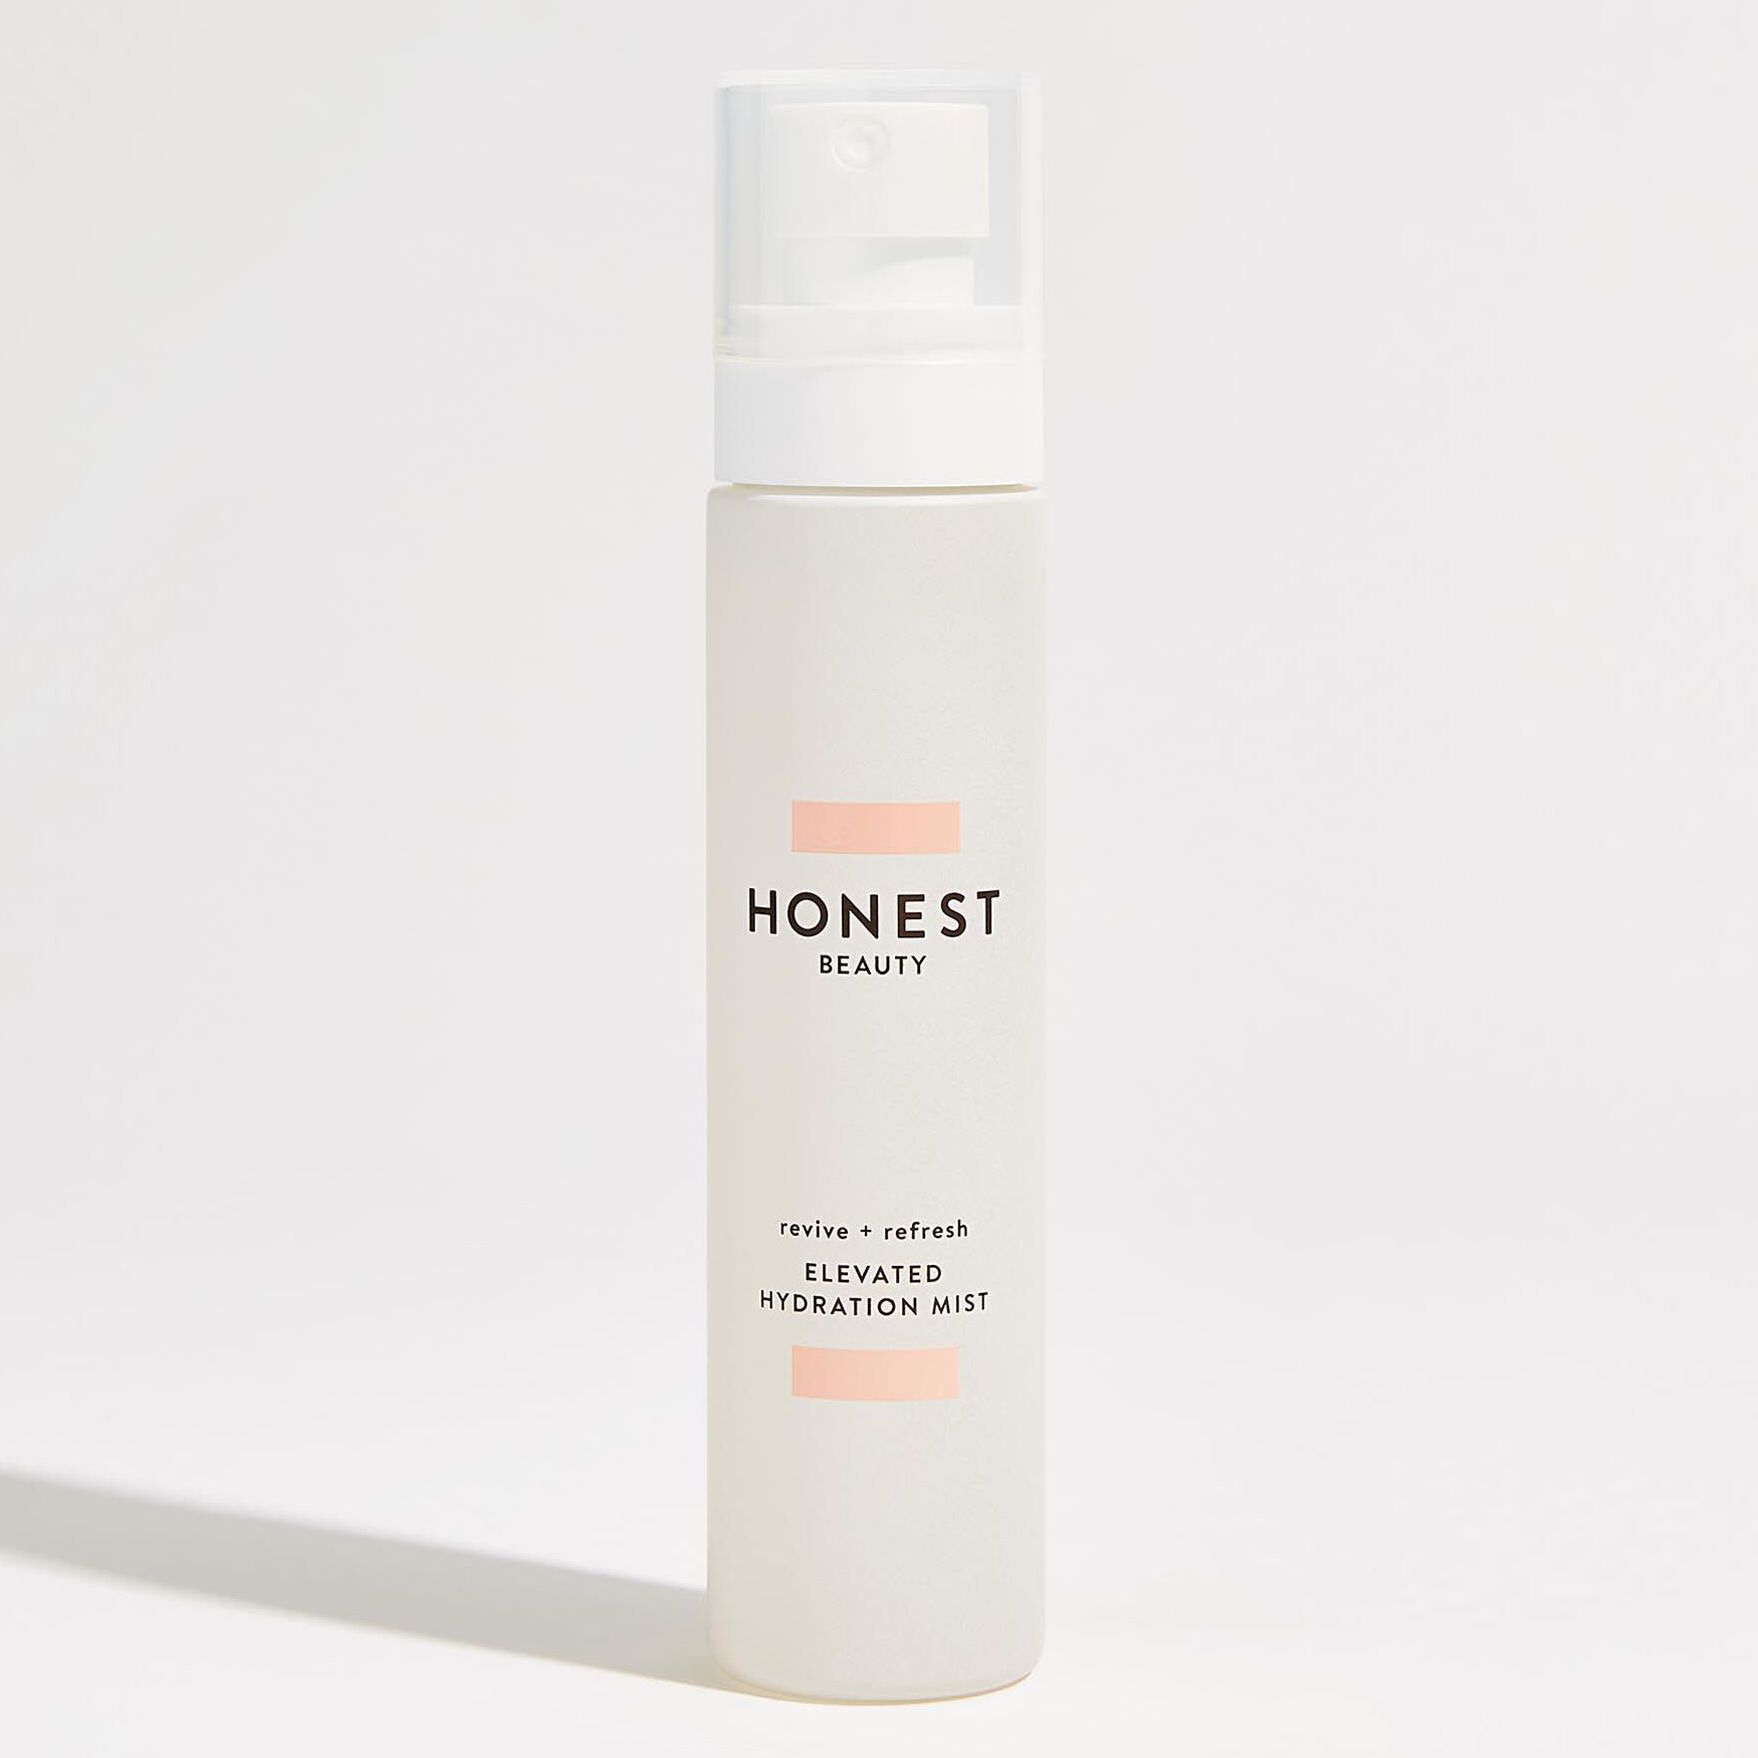 Honest Elevated Hydration Mist